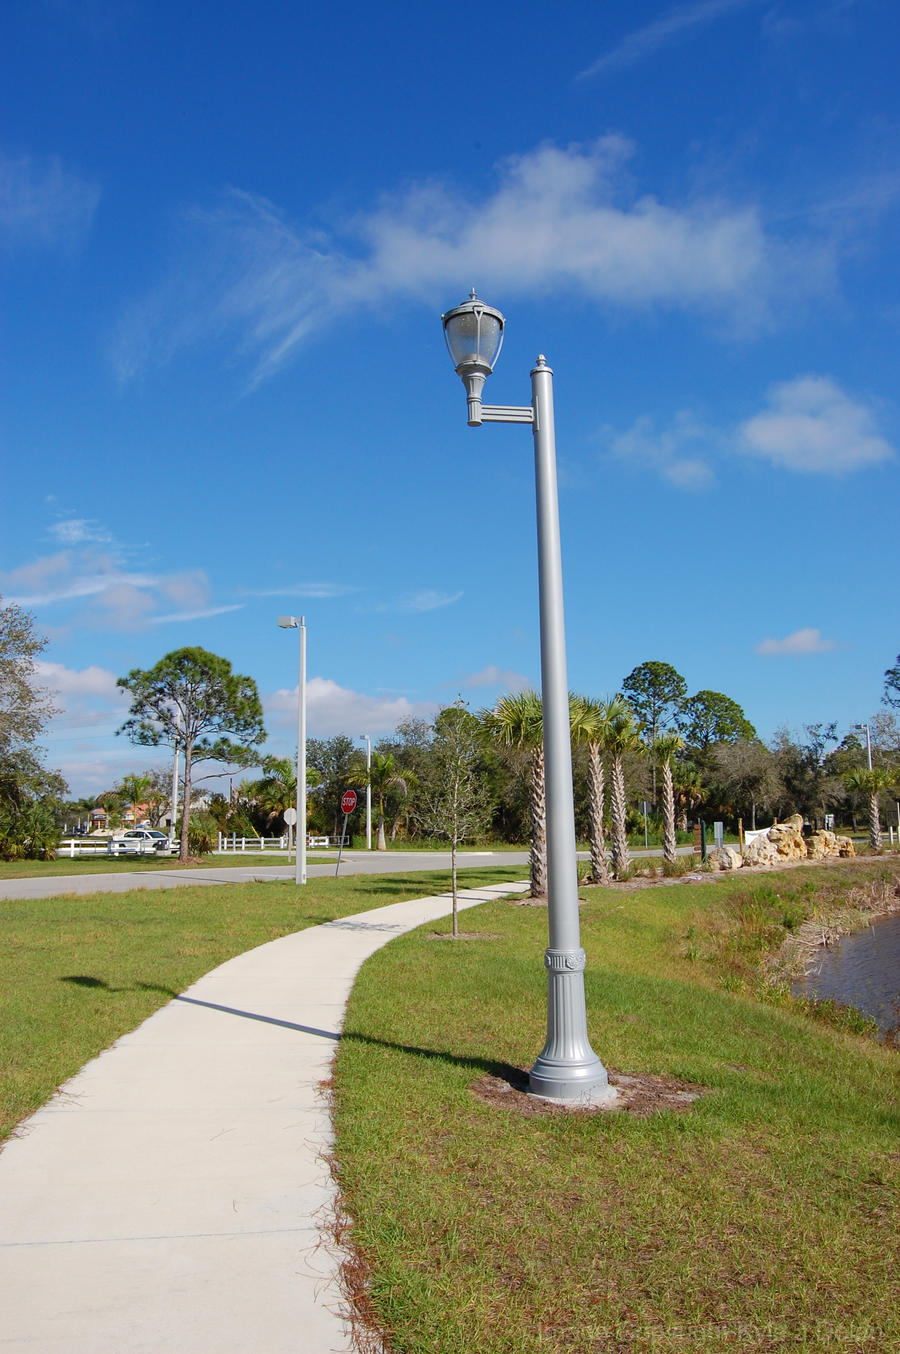 Lamp Post by Focus-Fire